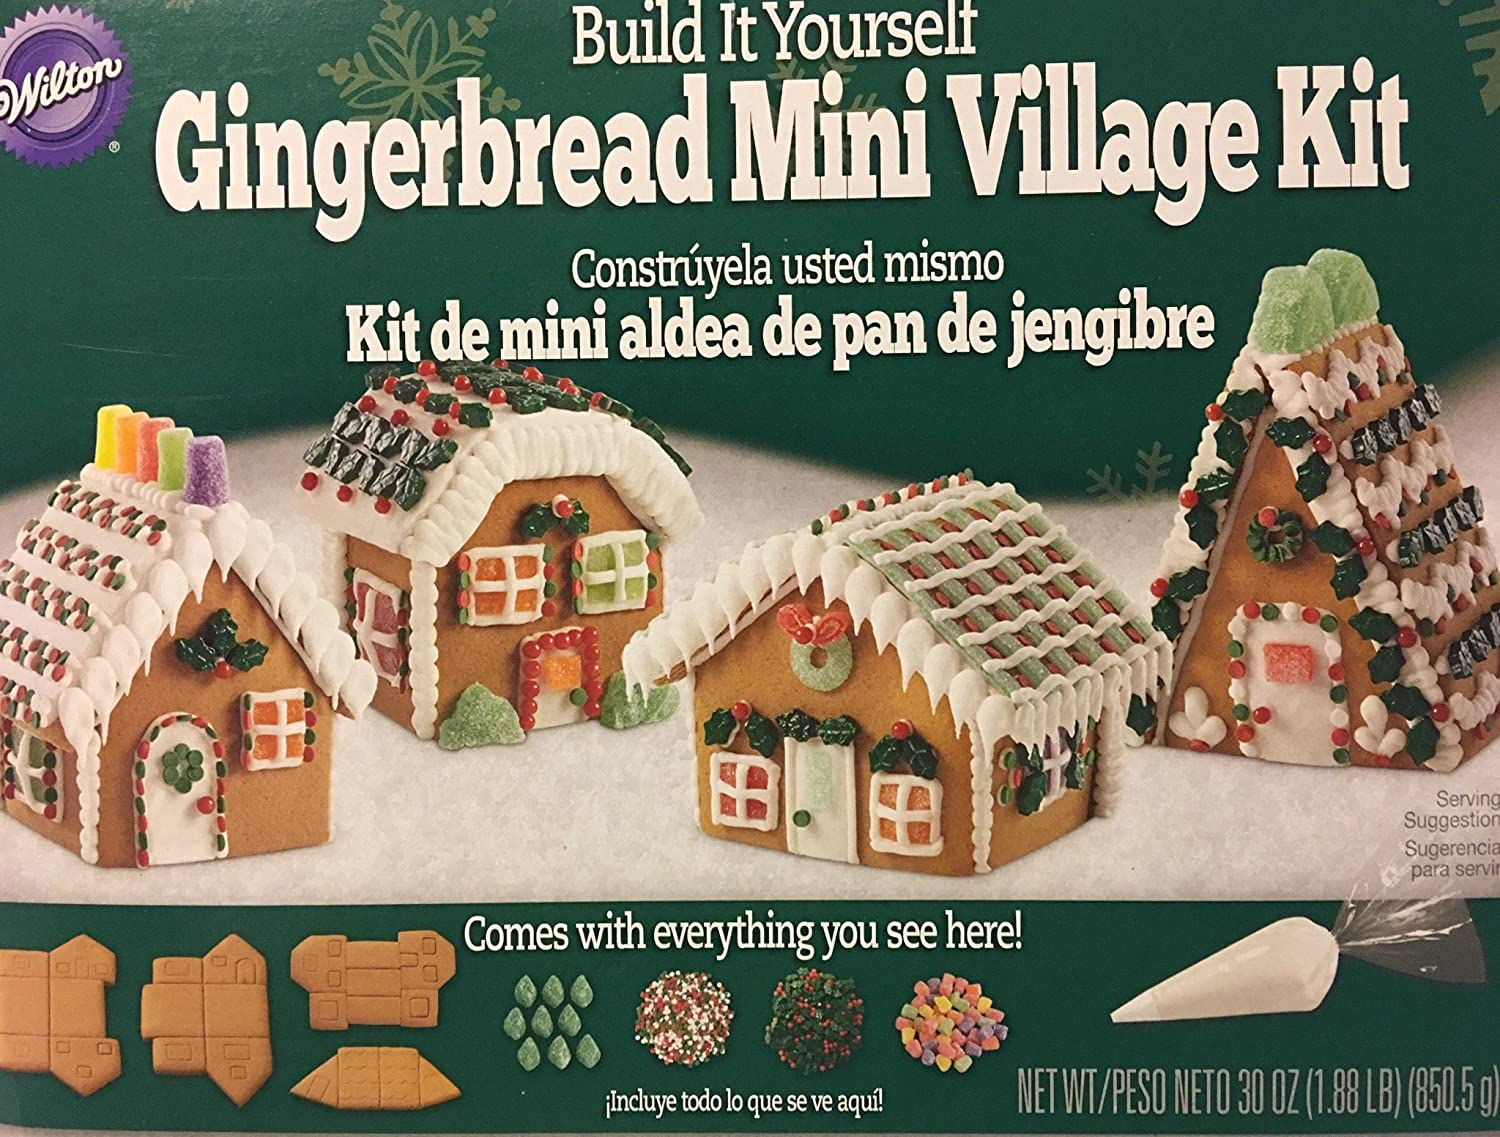 Amazon.com : Wilton Build It Yourself Gingerbread Mini Village Kit : Grocery & Gourmet Food